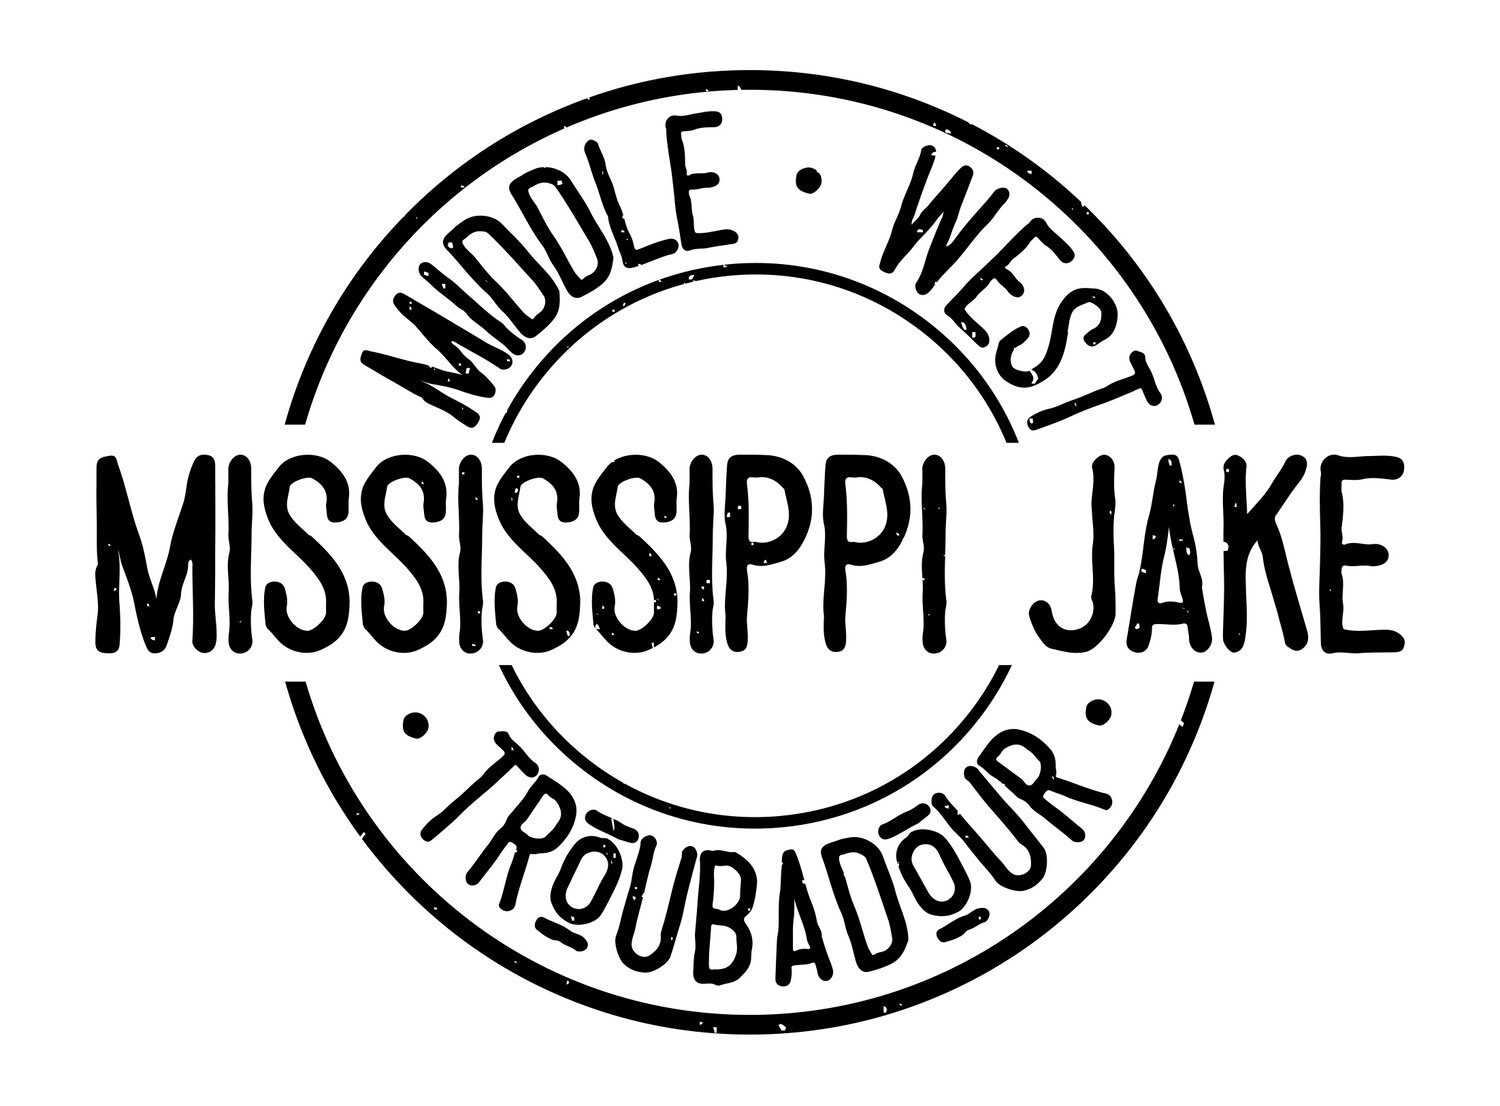 Mississippi Jake